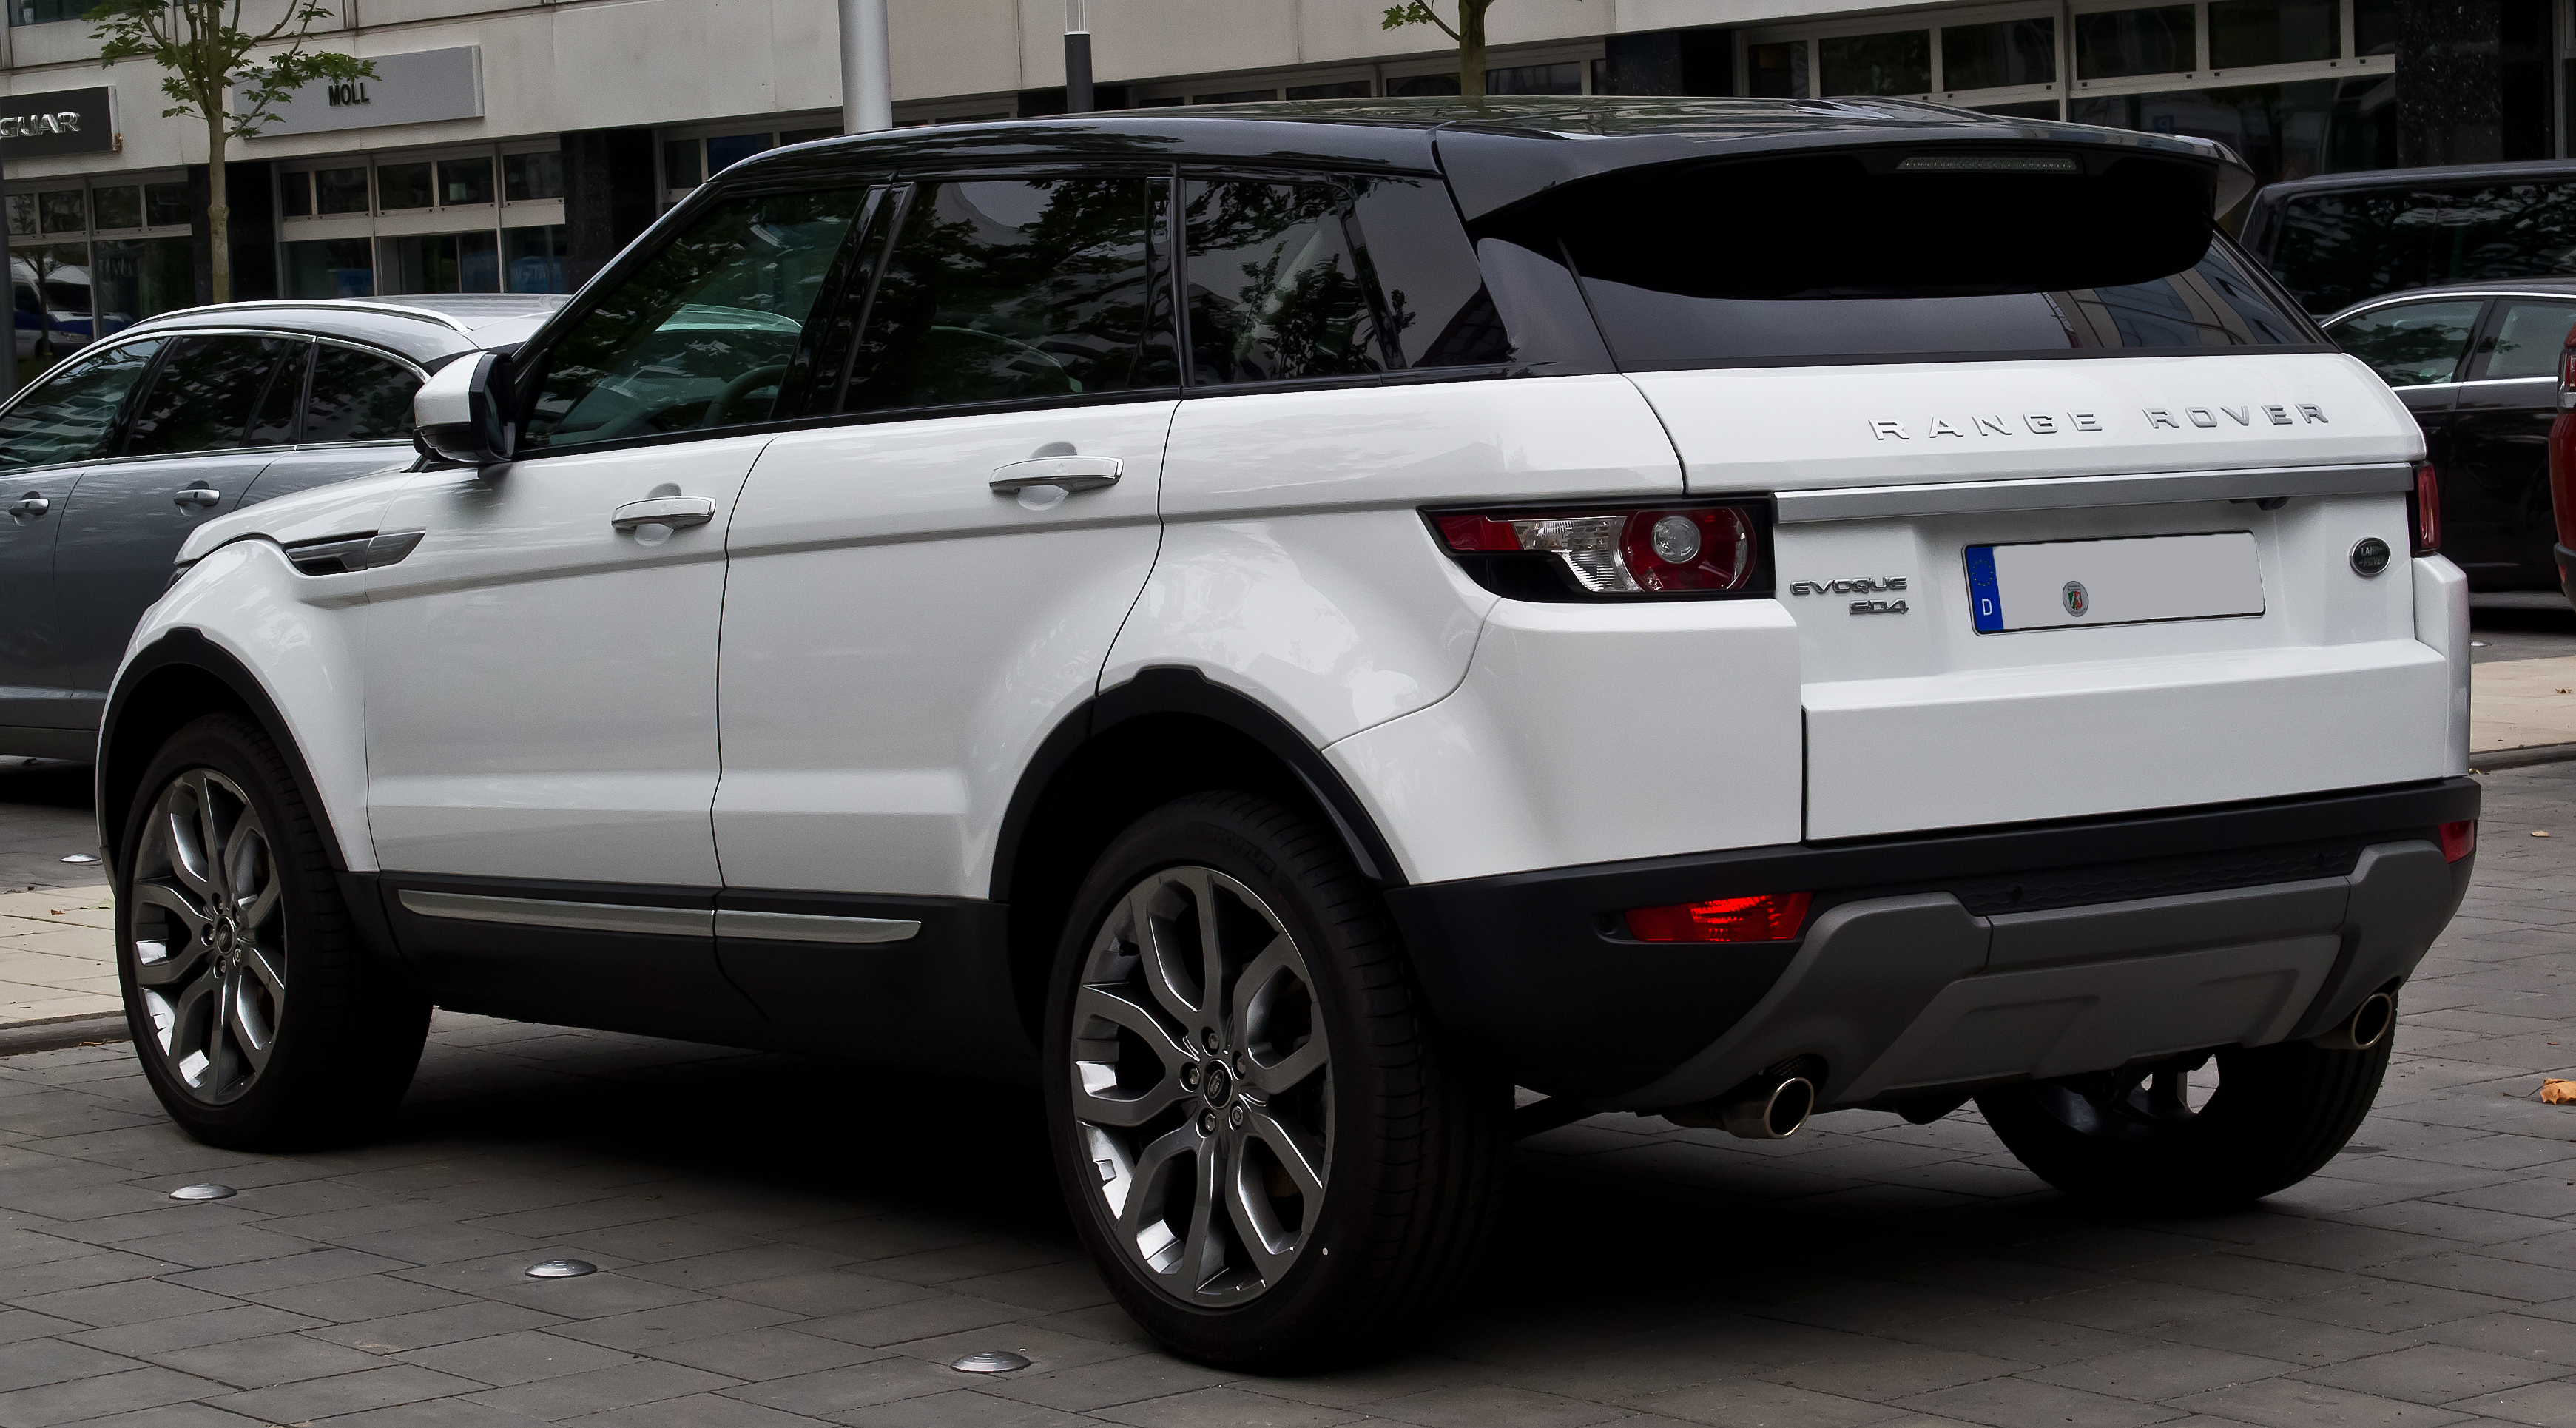 file range rover evoque sd4 4wd prestige heckansicht 12 juli 2014 d wikipedia. Black Bedroom Furniture Sets. Home Design Ideas